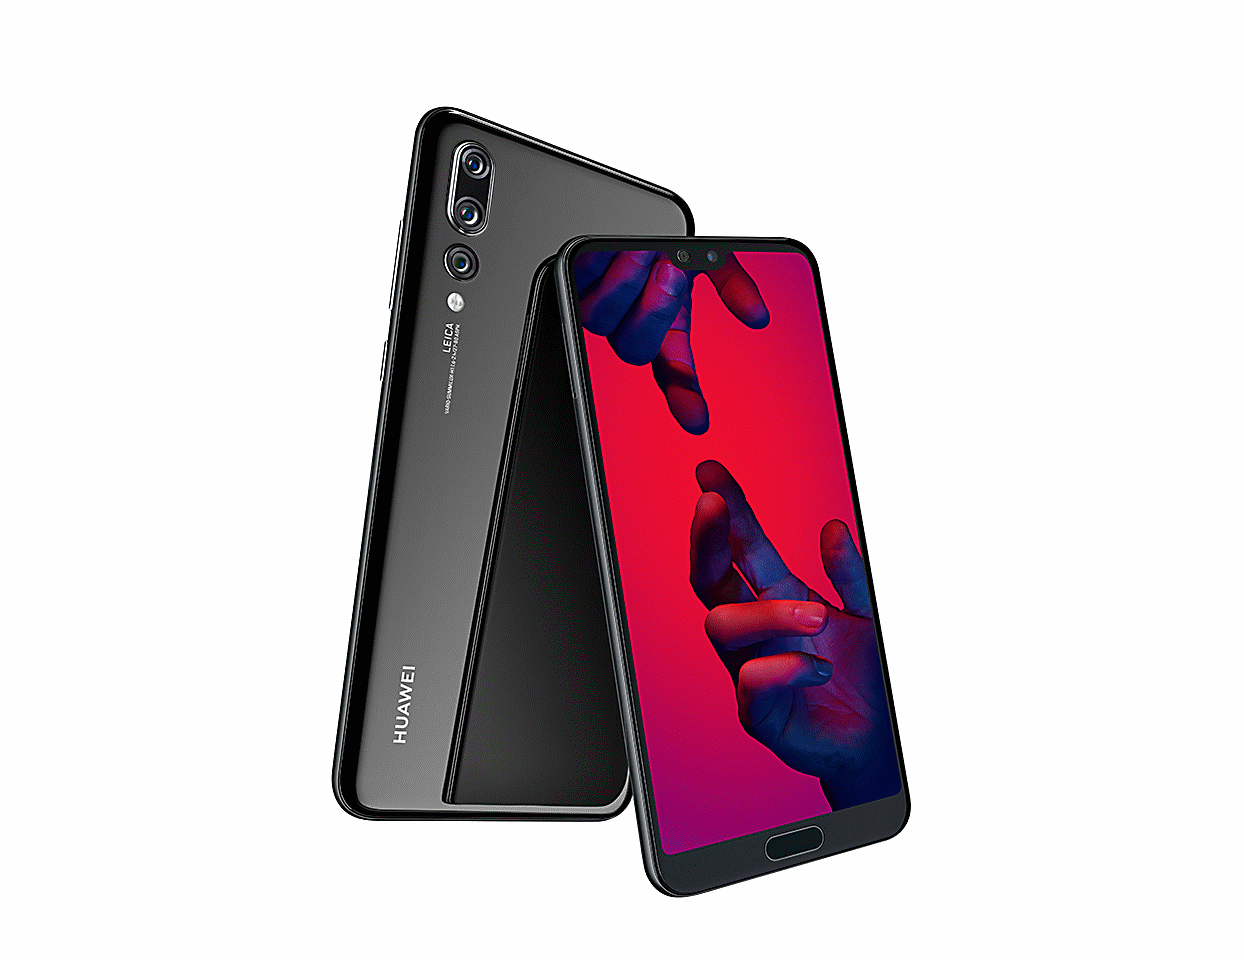 Huawei P20 Pro Deals - Contract, Upgrade & Sim Free